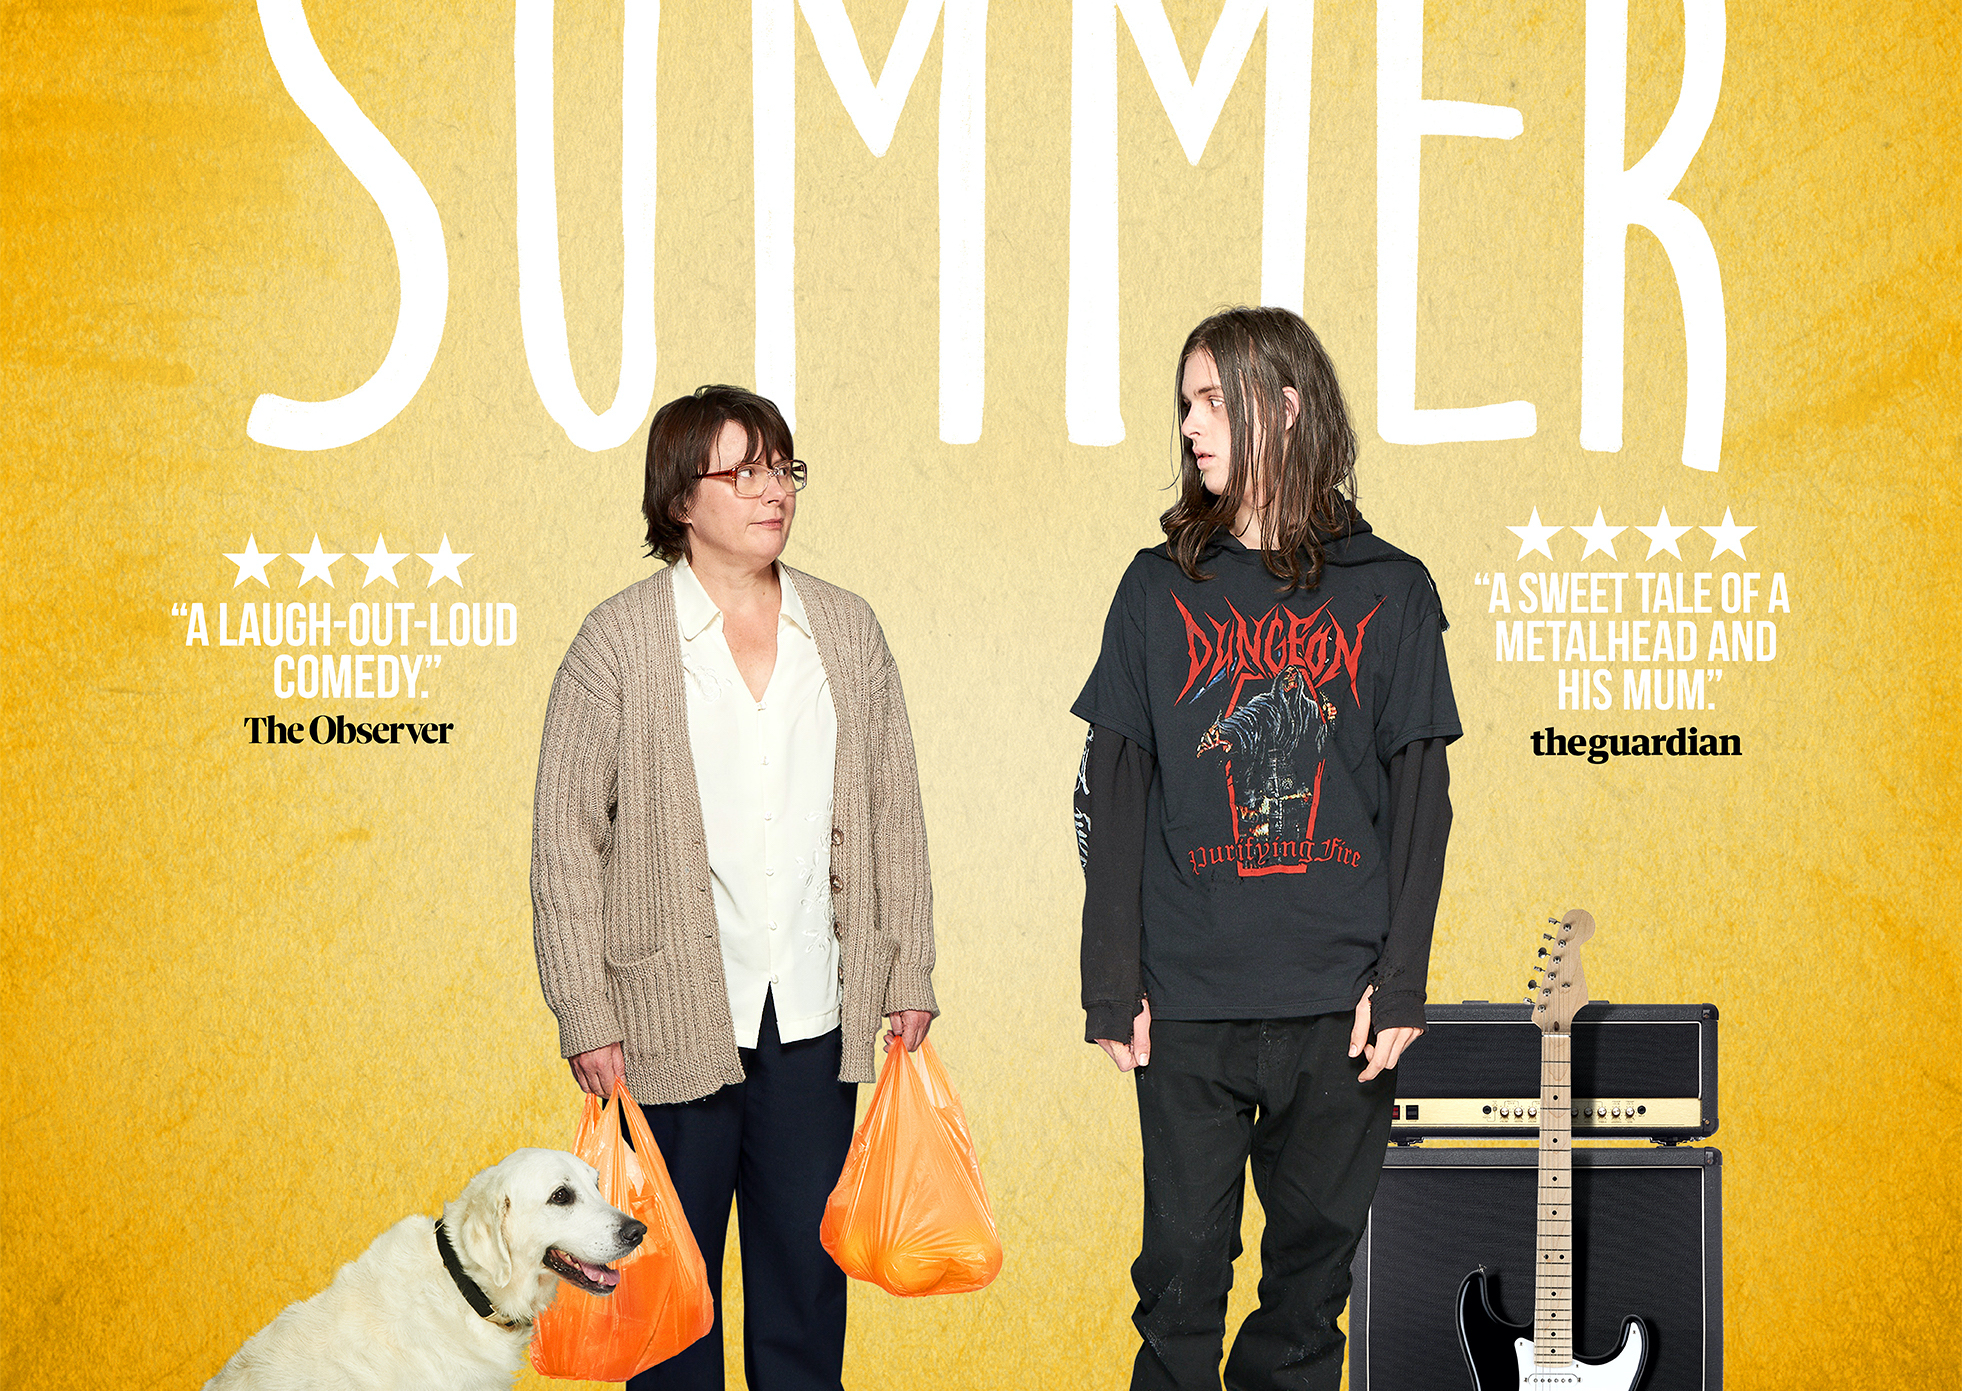 Movie Poster for the film Days of the Bagnold Summer shows two people looking at eachother. The one on the left has a dog by his feet and the one on the right has a guitar and an amp by their feet.